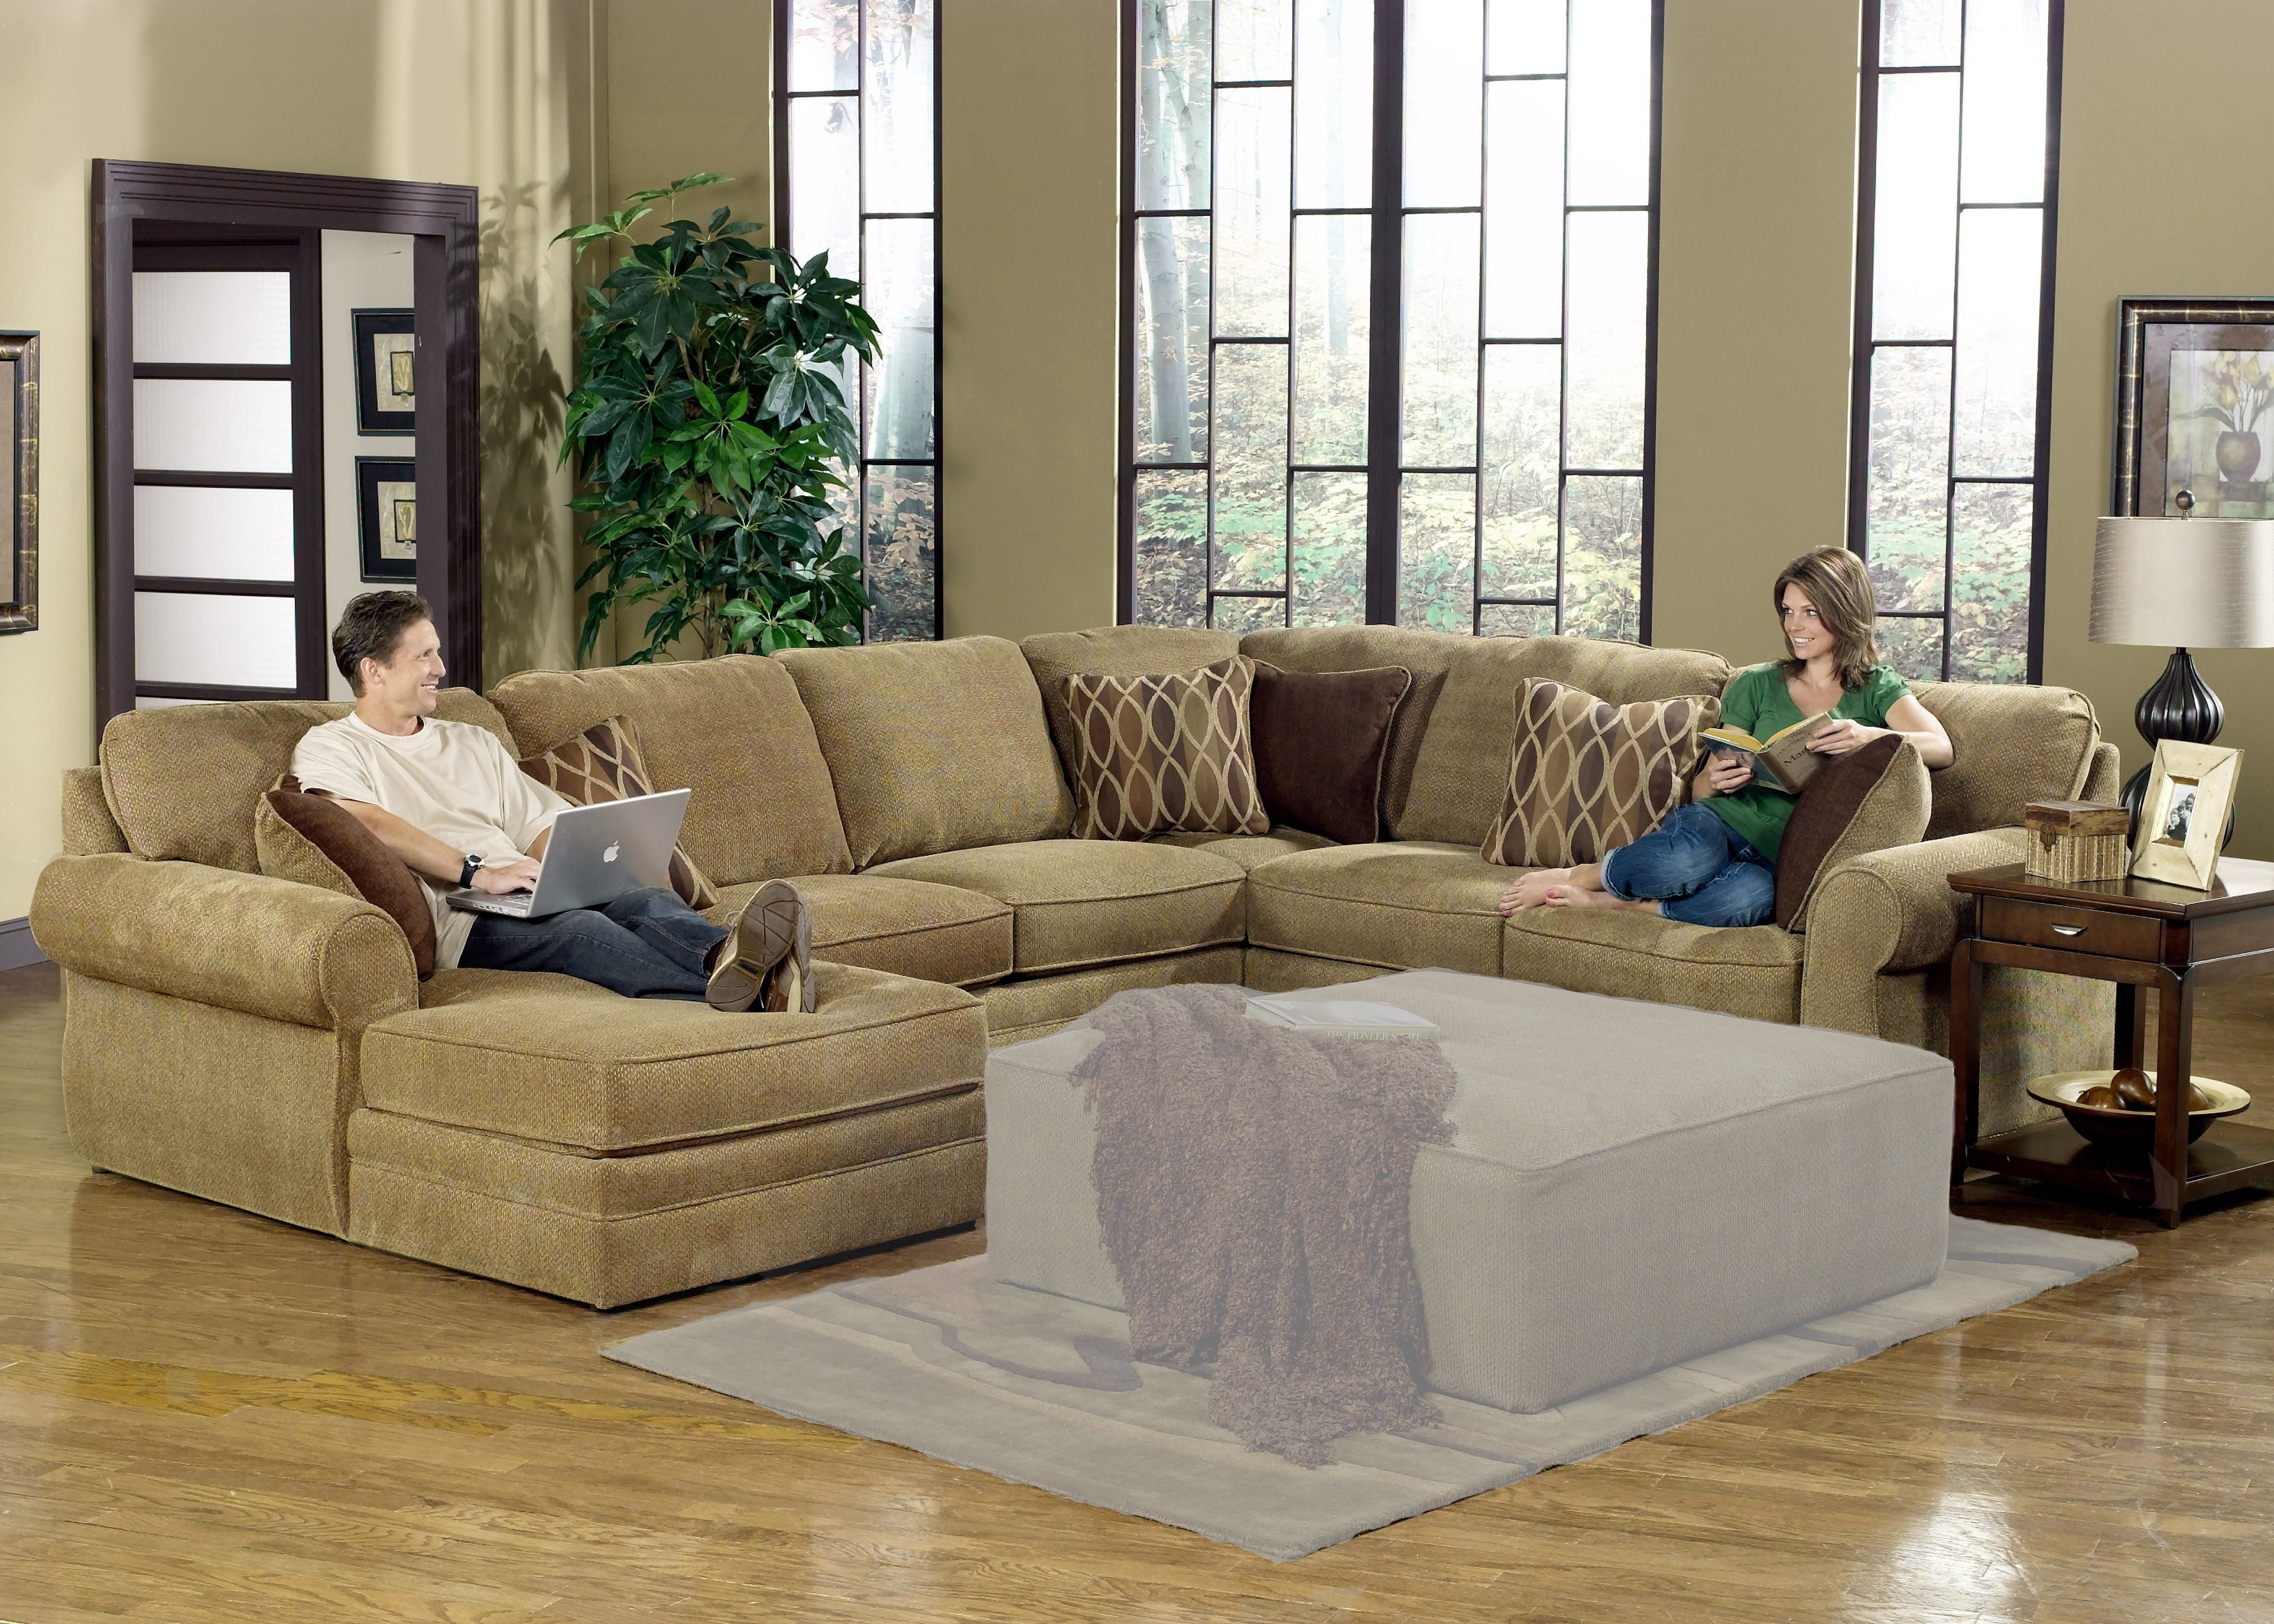 Epic Cheap U Shaped Sectional Sofas 35 About Remodel Backless With Regard To Backless Sectional Sofa (View 15 of 15)